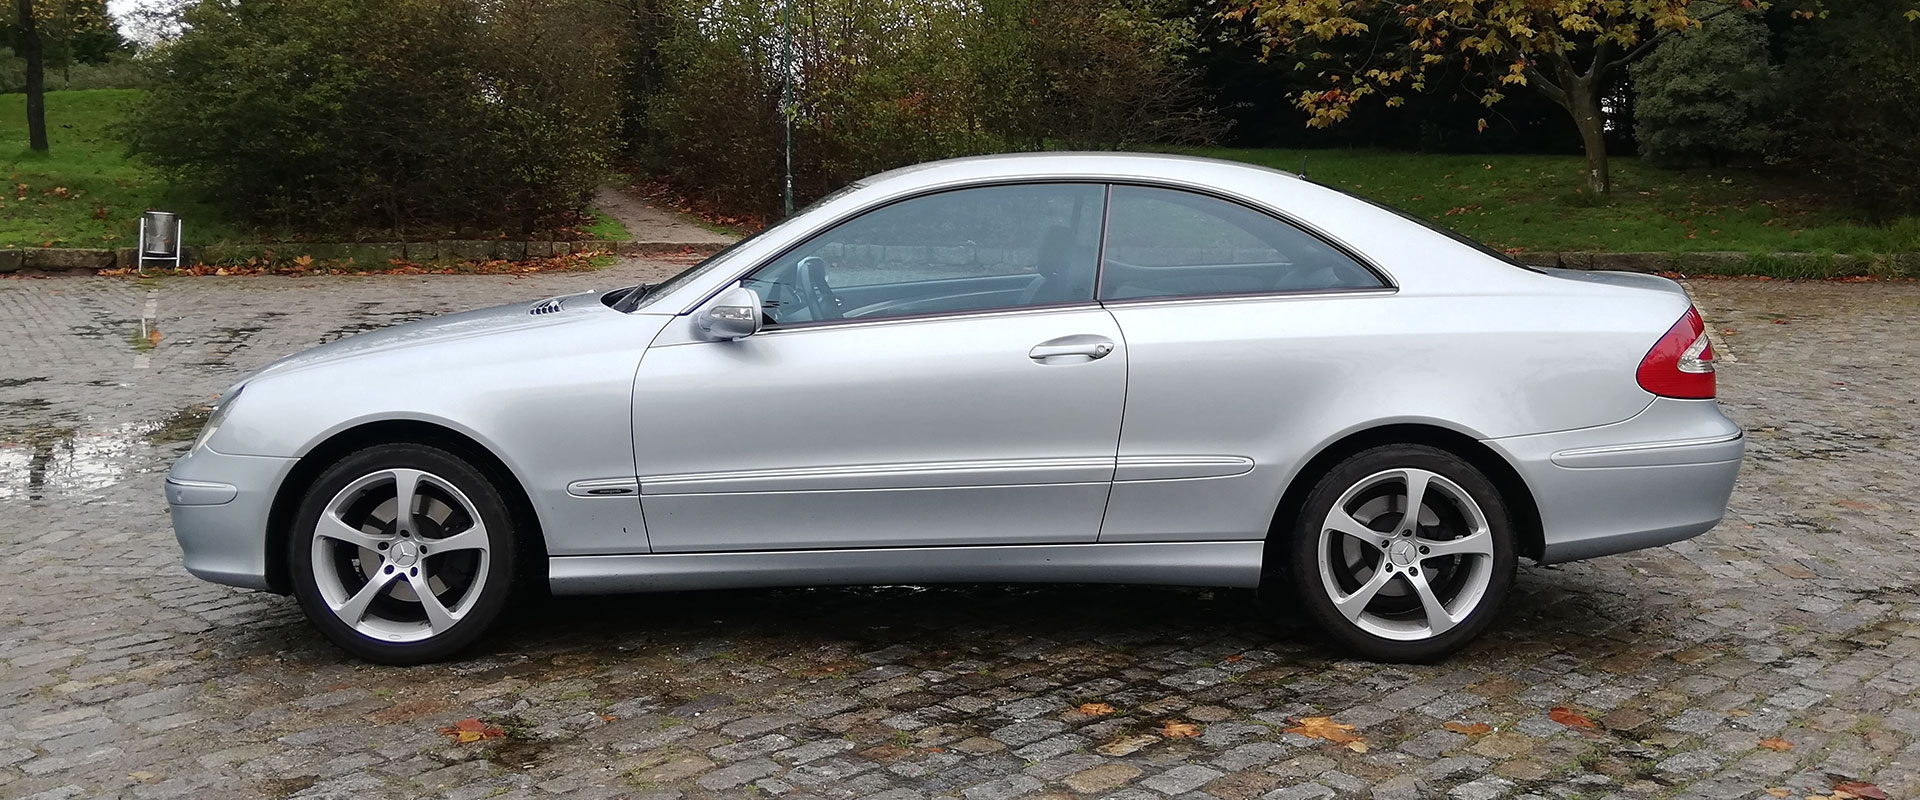 Mercedes-Benz CLK 270 CDI Avantgarde Coupé